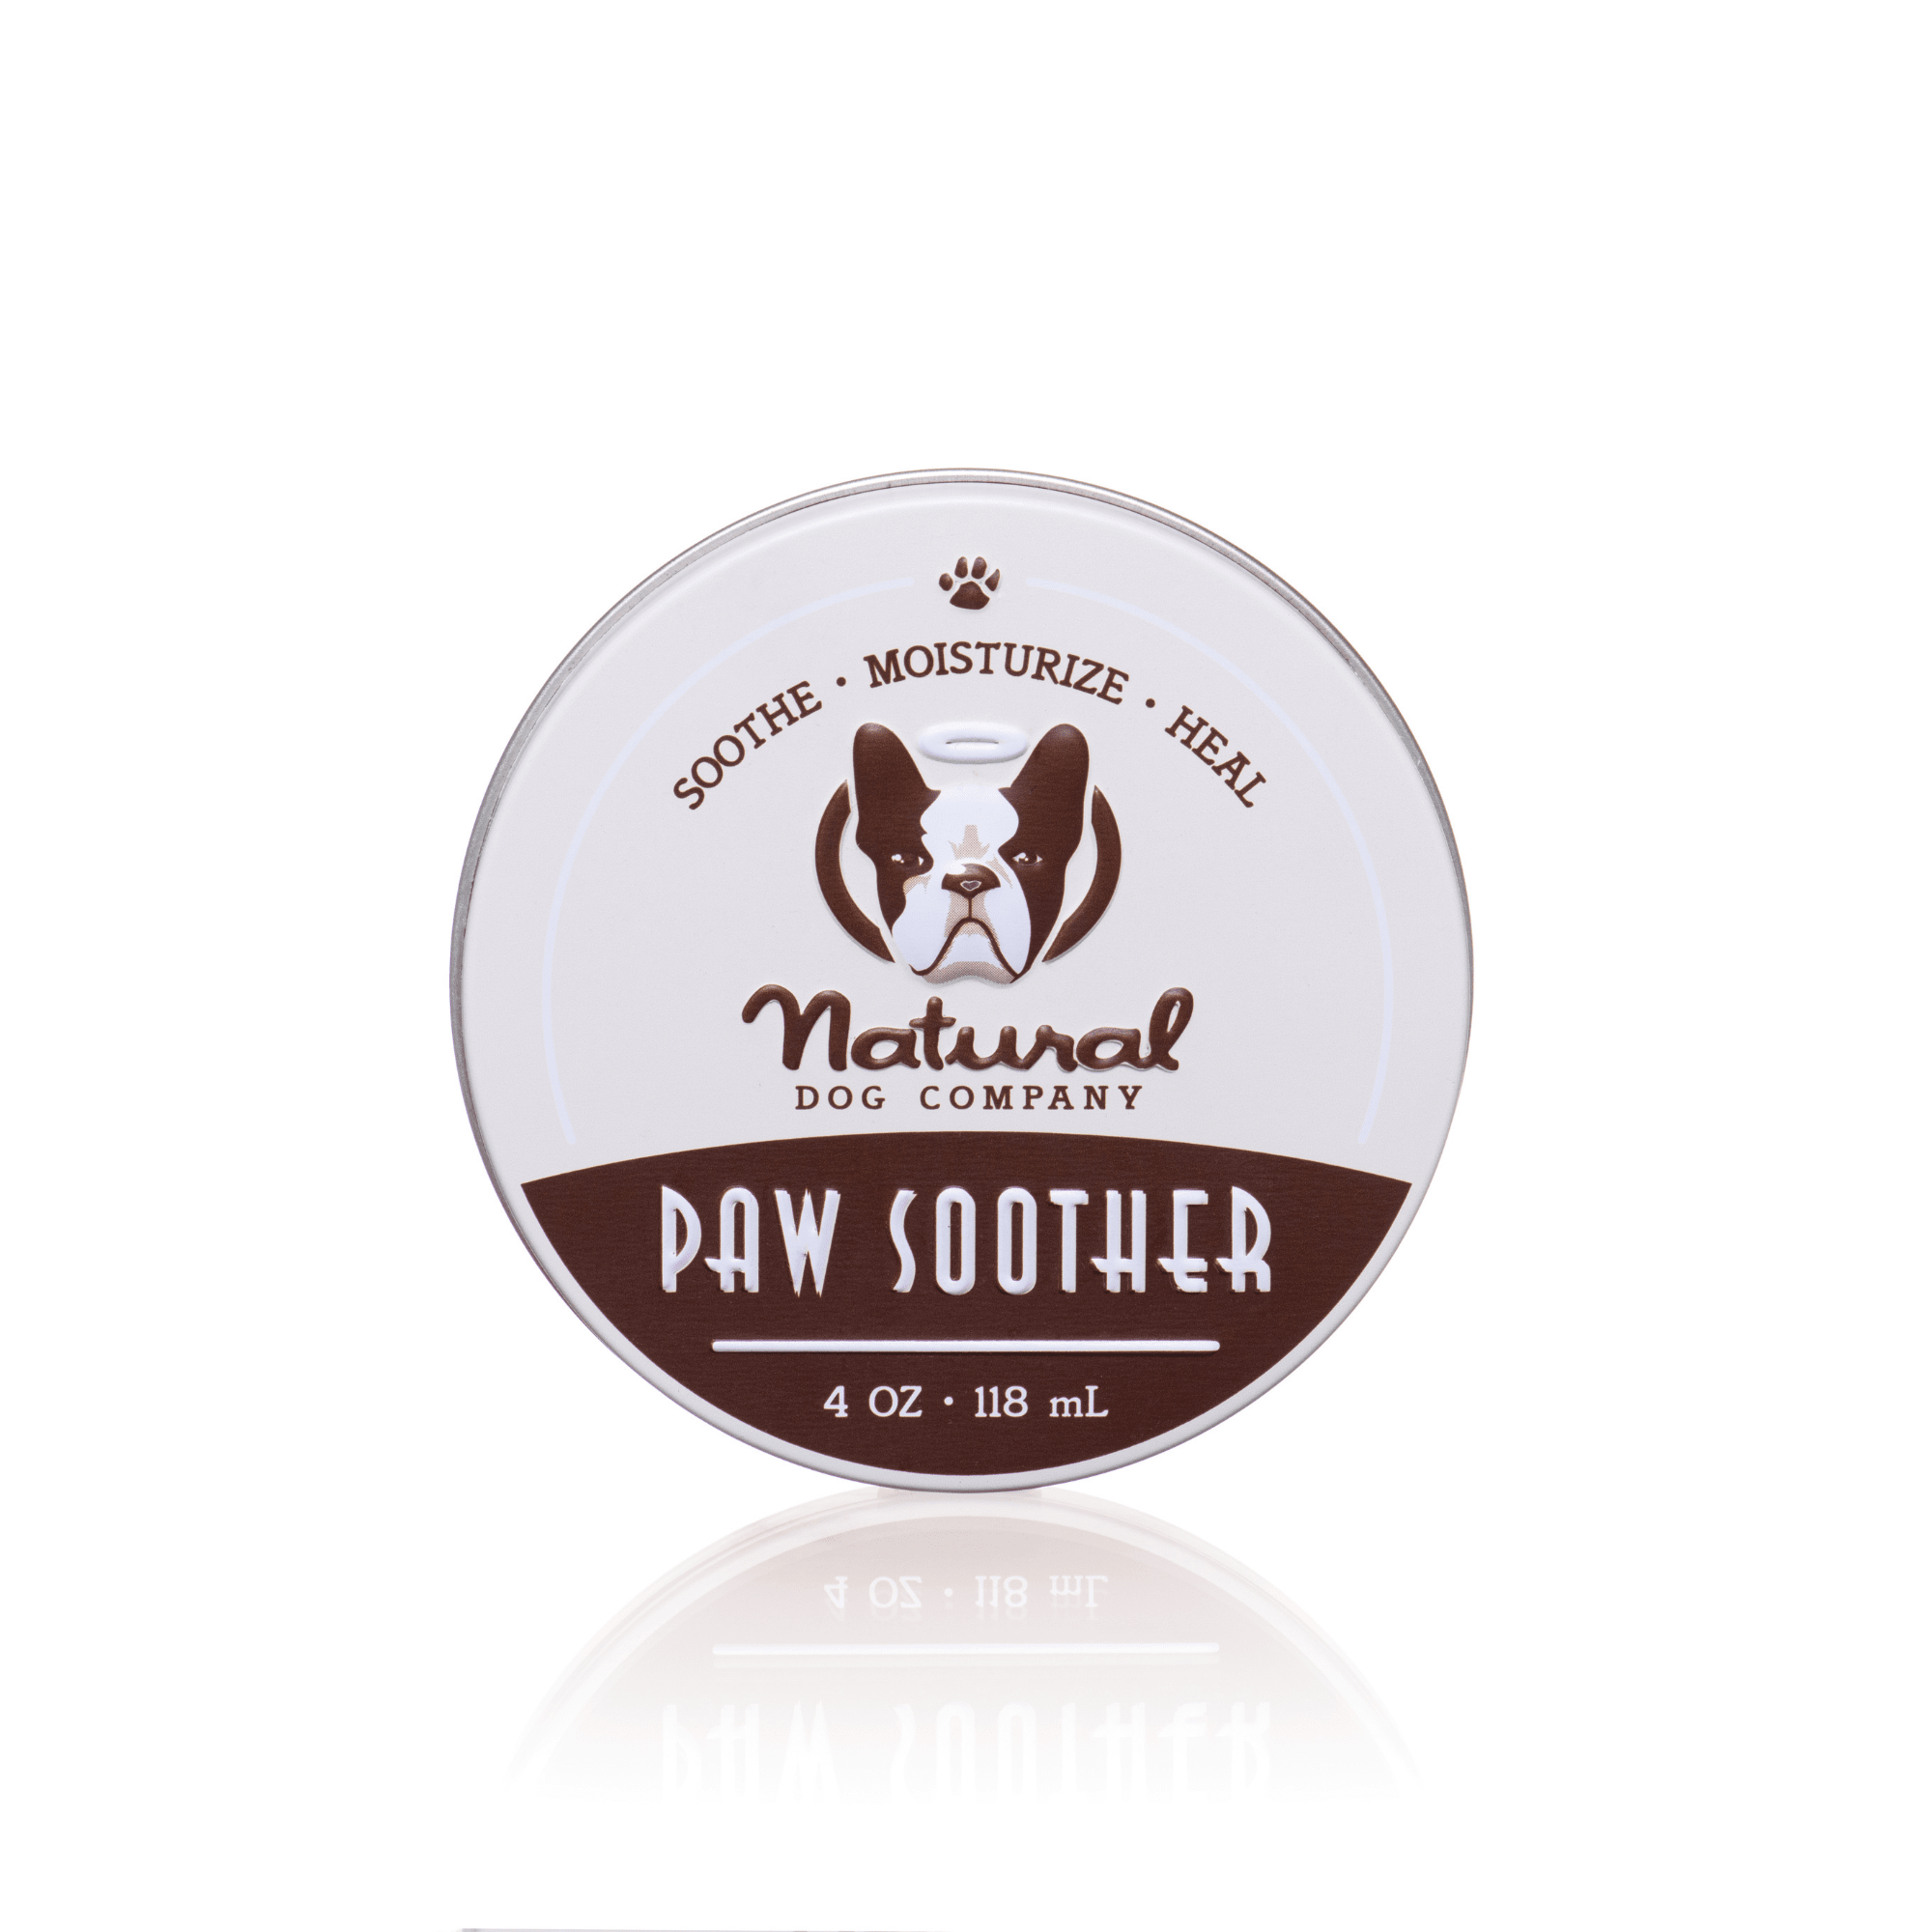 Natural Dog Company Paw Soother 4oz tin